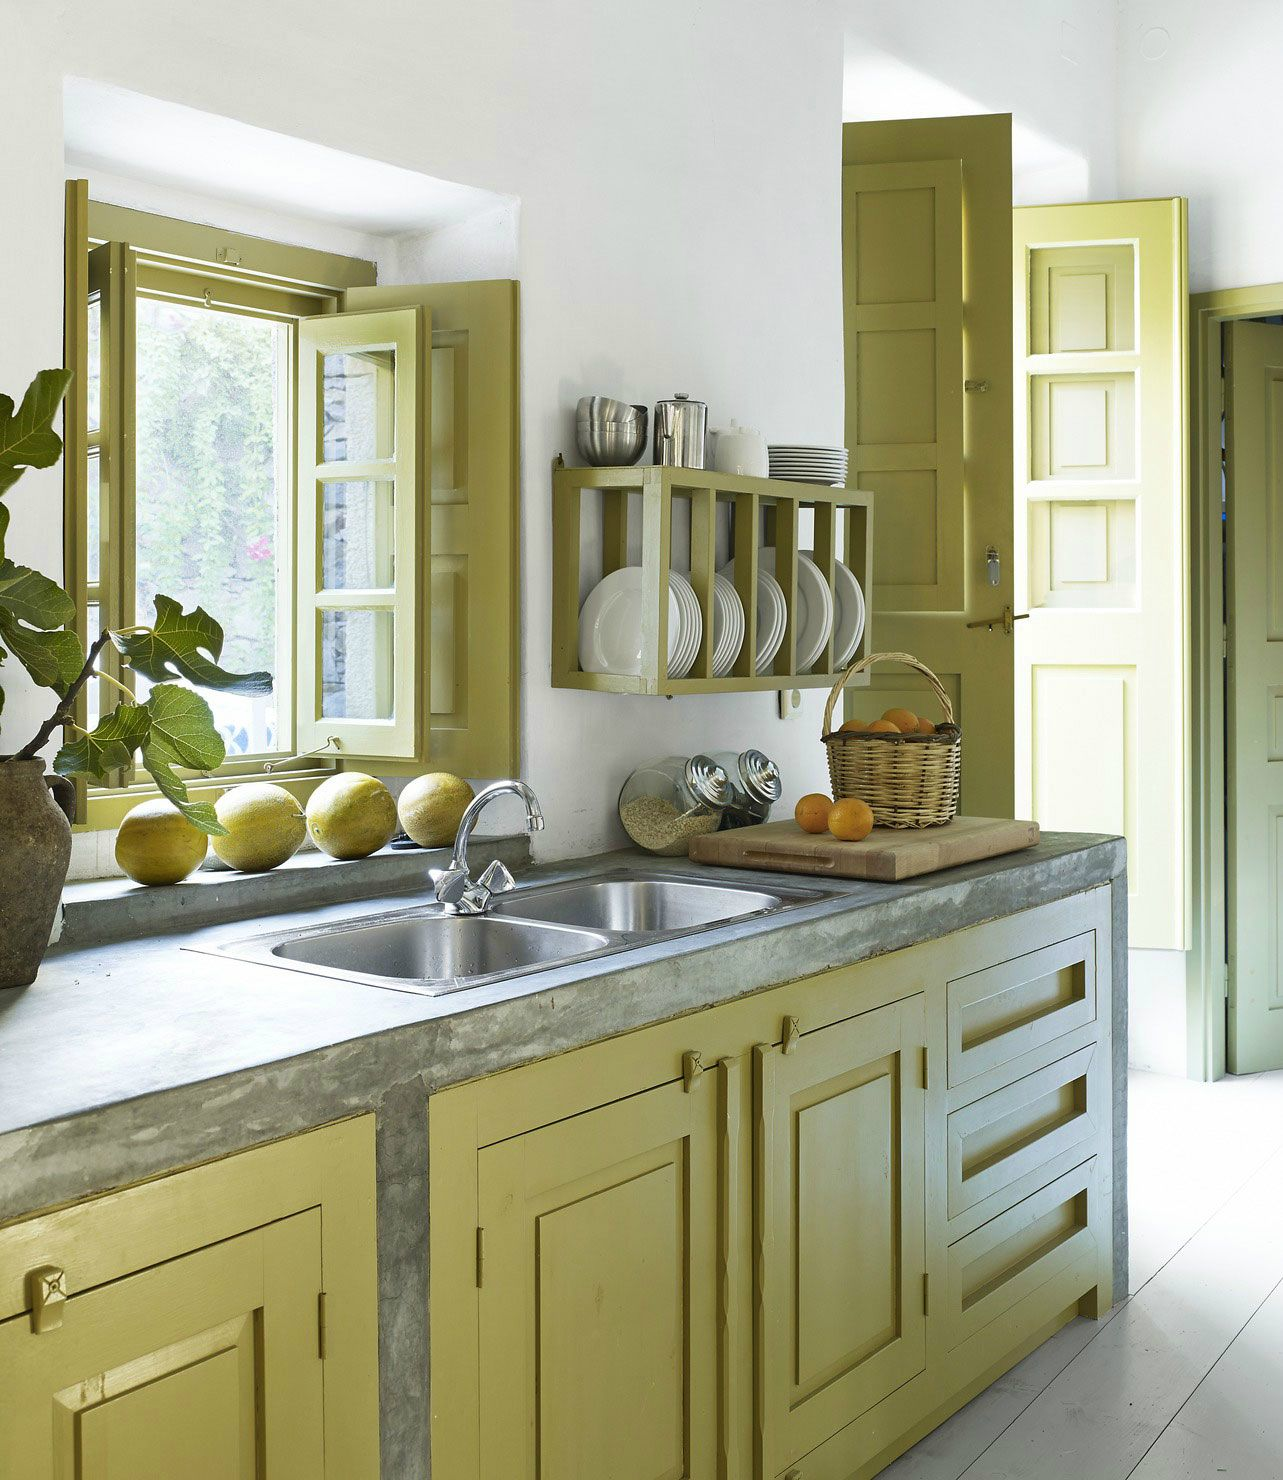 Elle Decor Predicts The Color Trends For 2017 Yellow Kitchen Interior Elle Decor And Kitchens